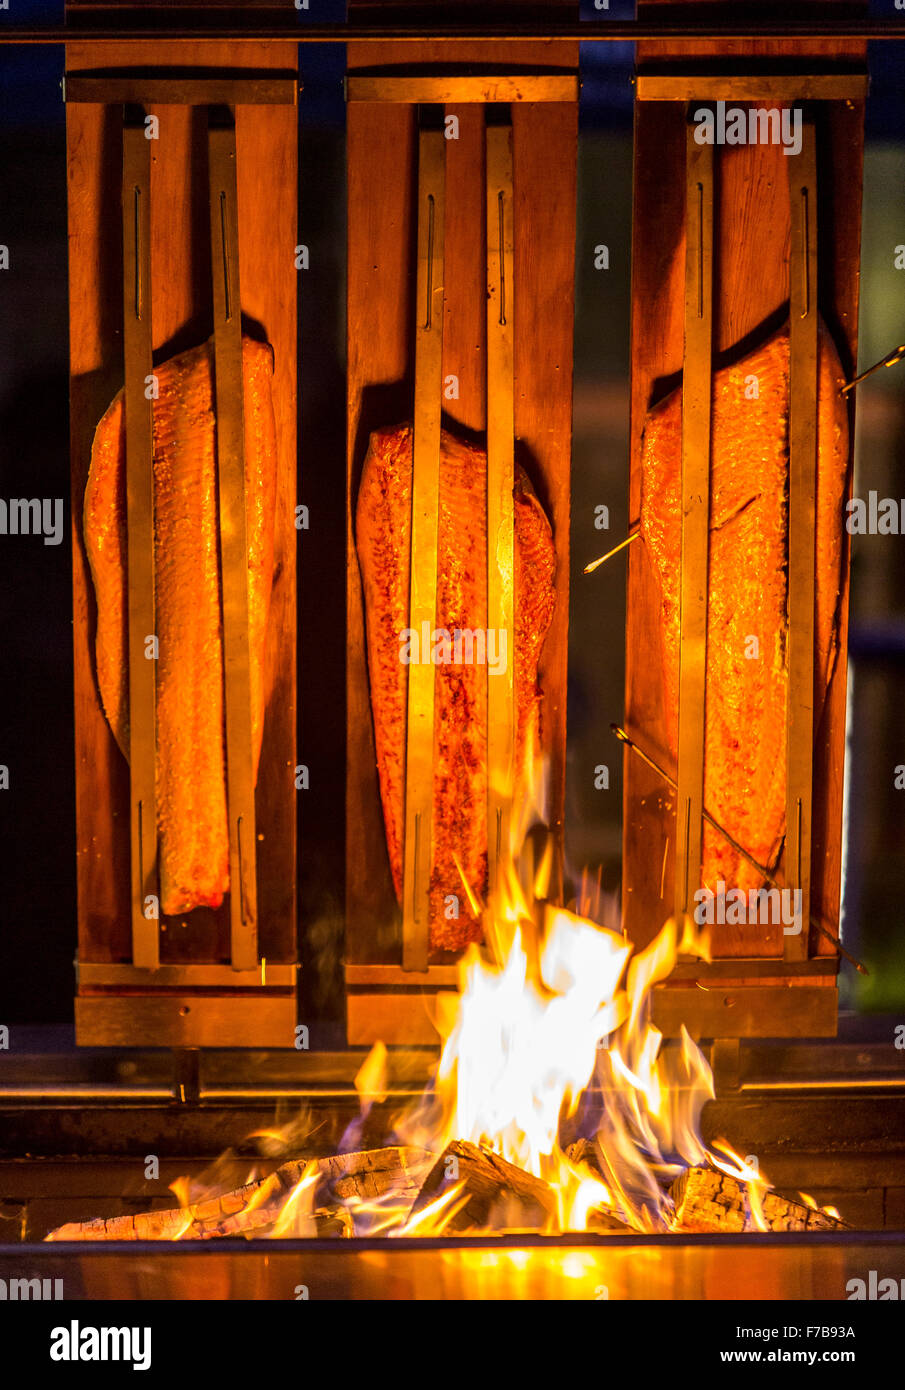 Salmon is smoked and grilled over open fire, specialty on a food market - Stock Image